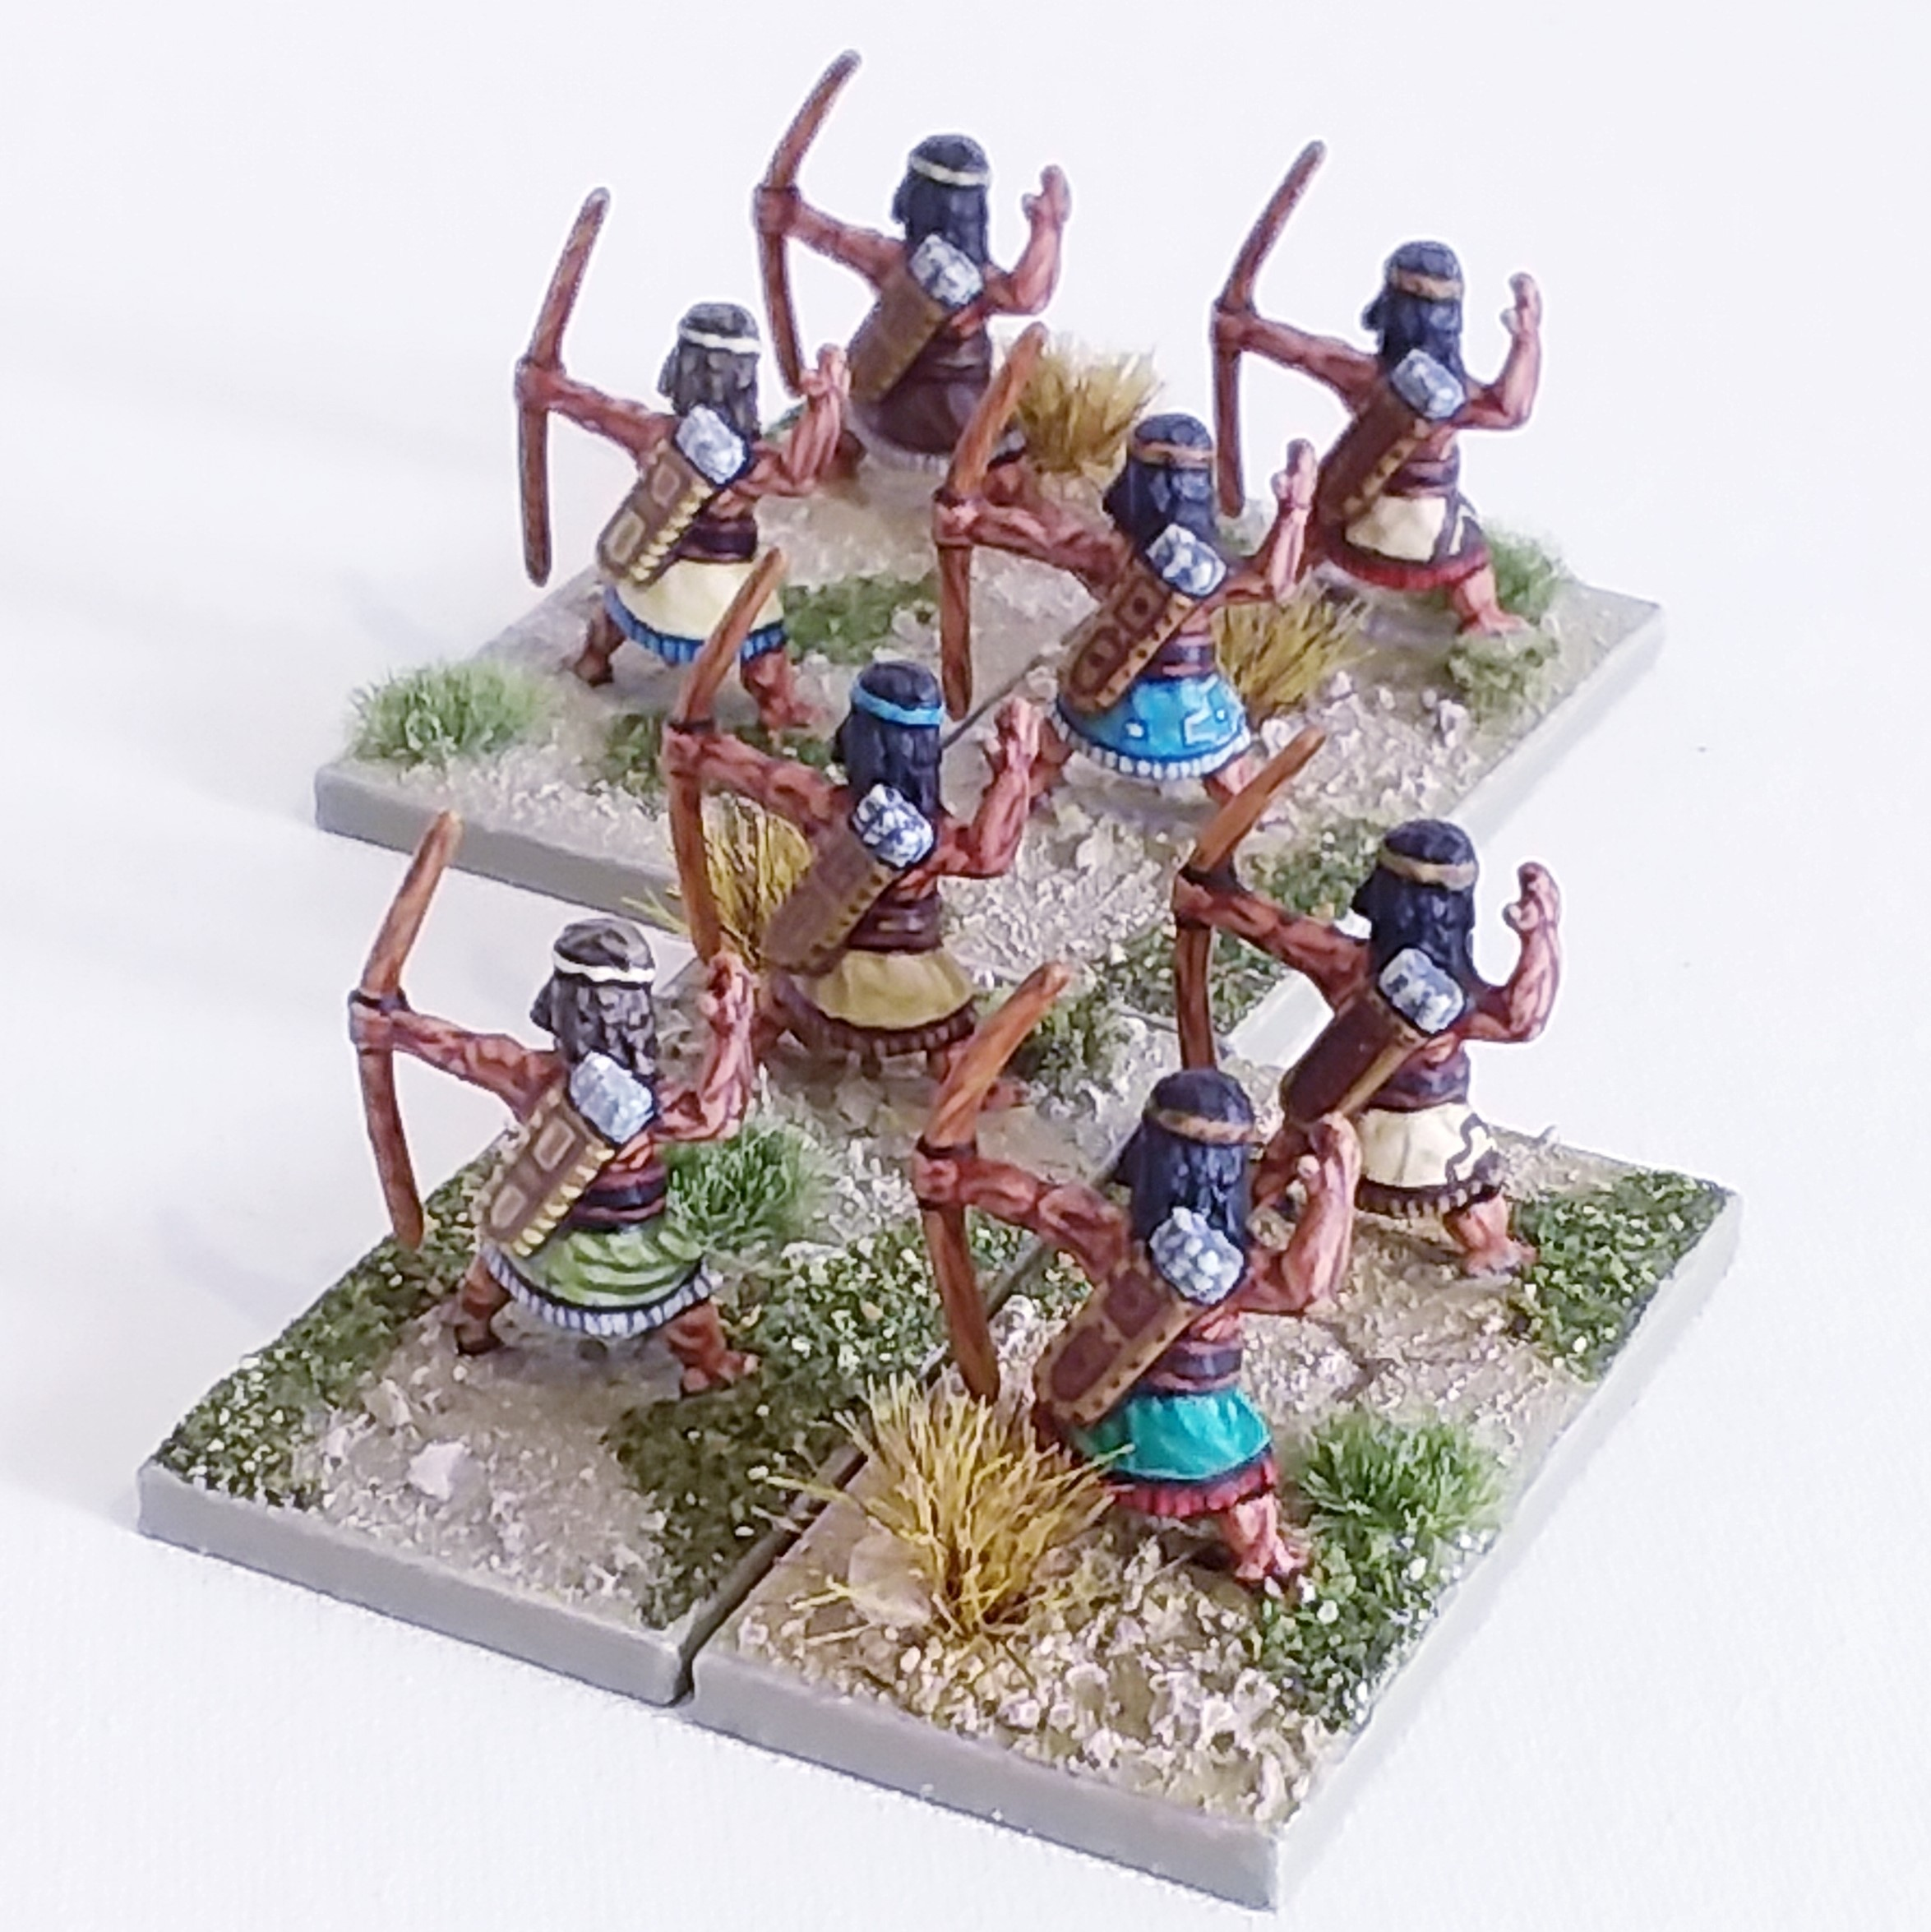 t. Tribal Skirmishers rear.jpg